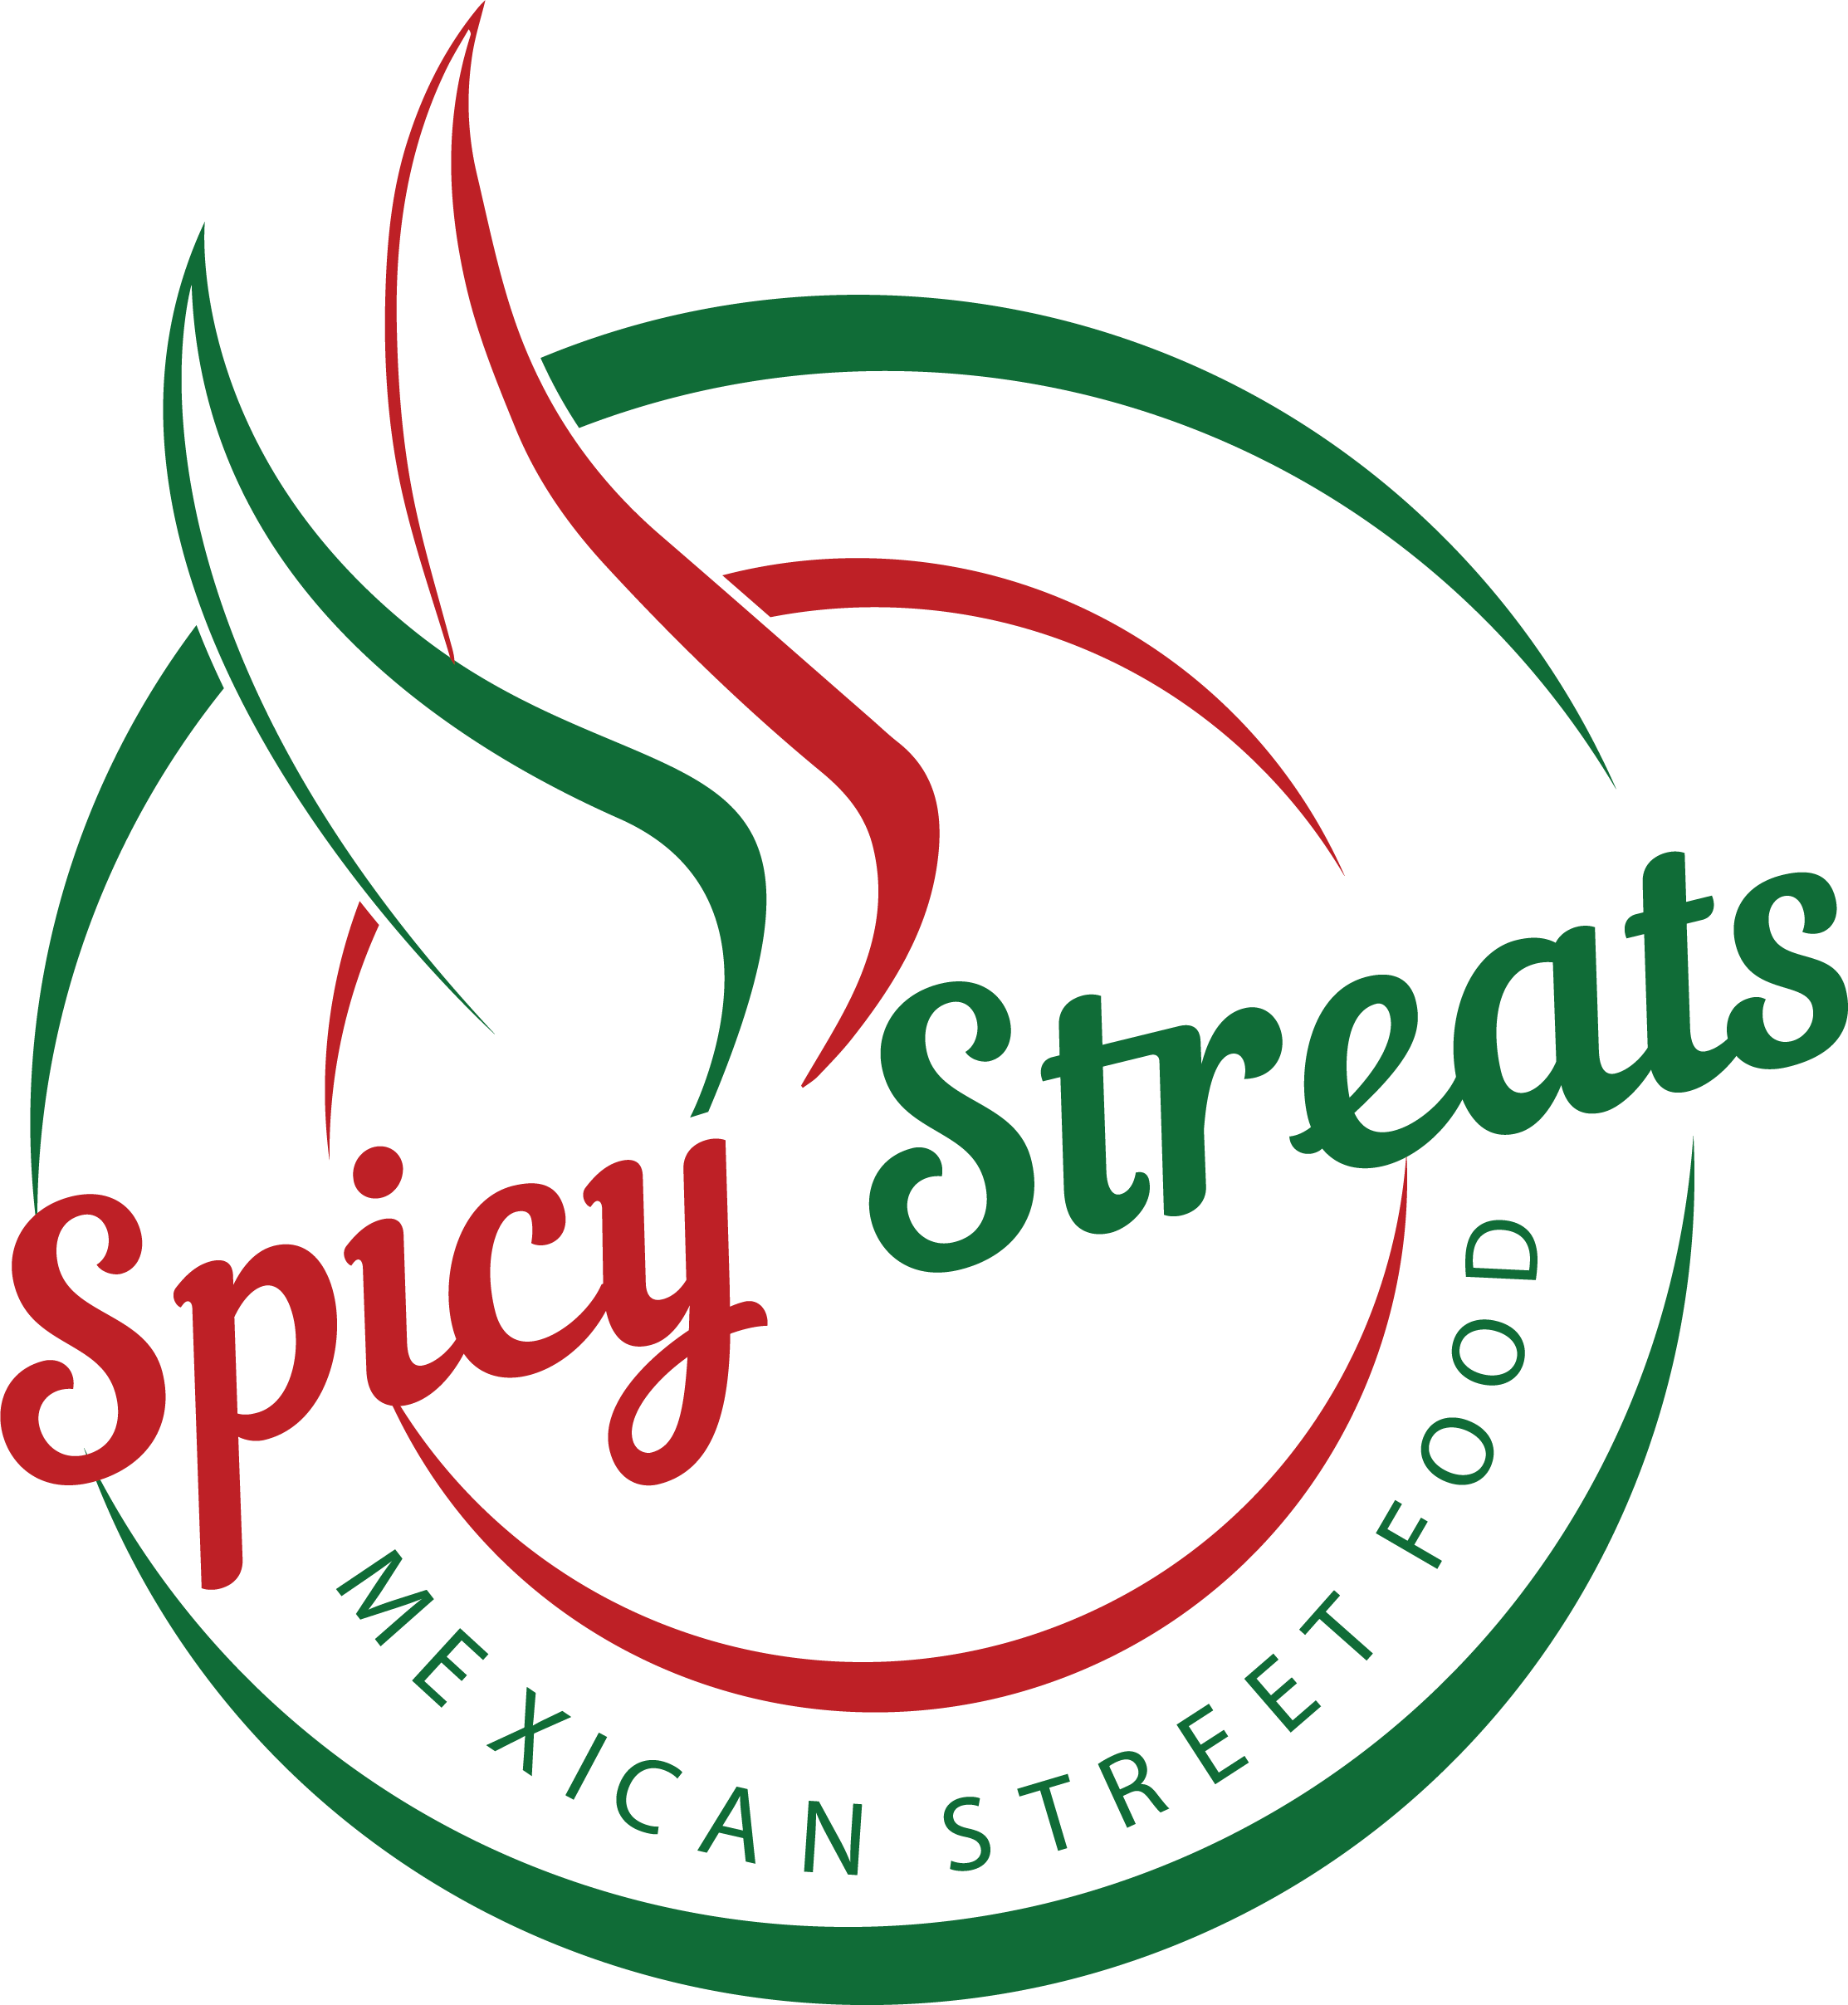 Spicy Streats